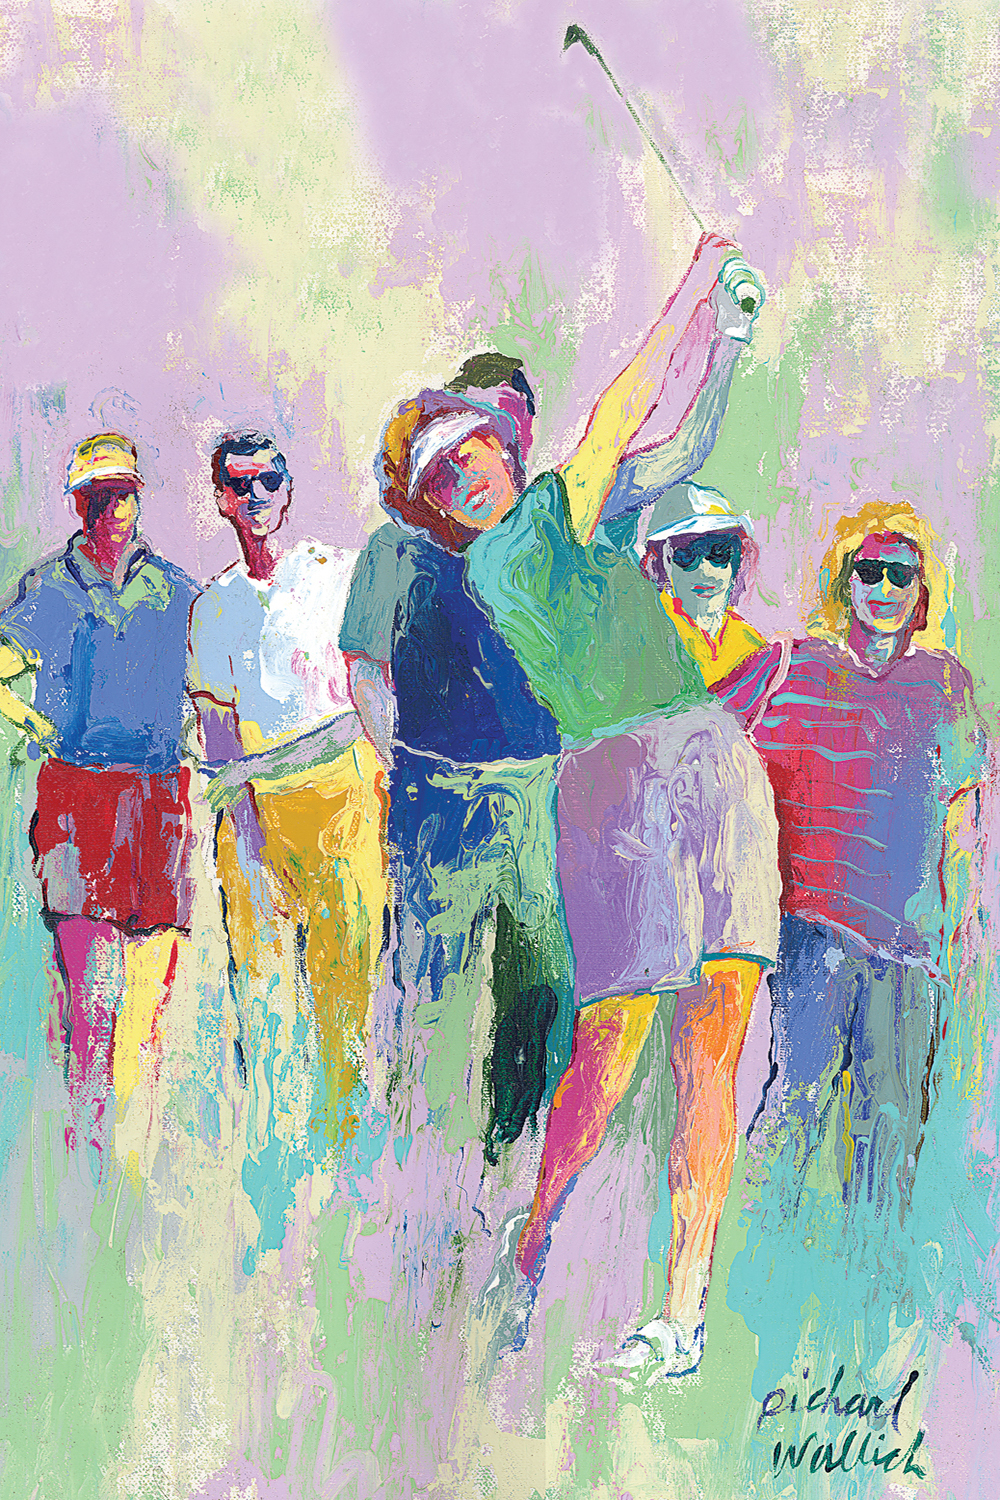 a colorful painting of a woman golfer post-swing surrounded by a crowd